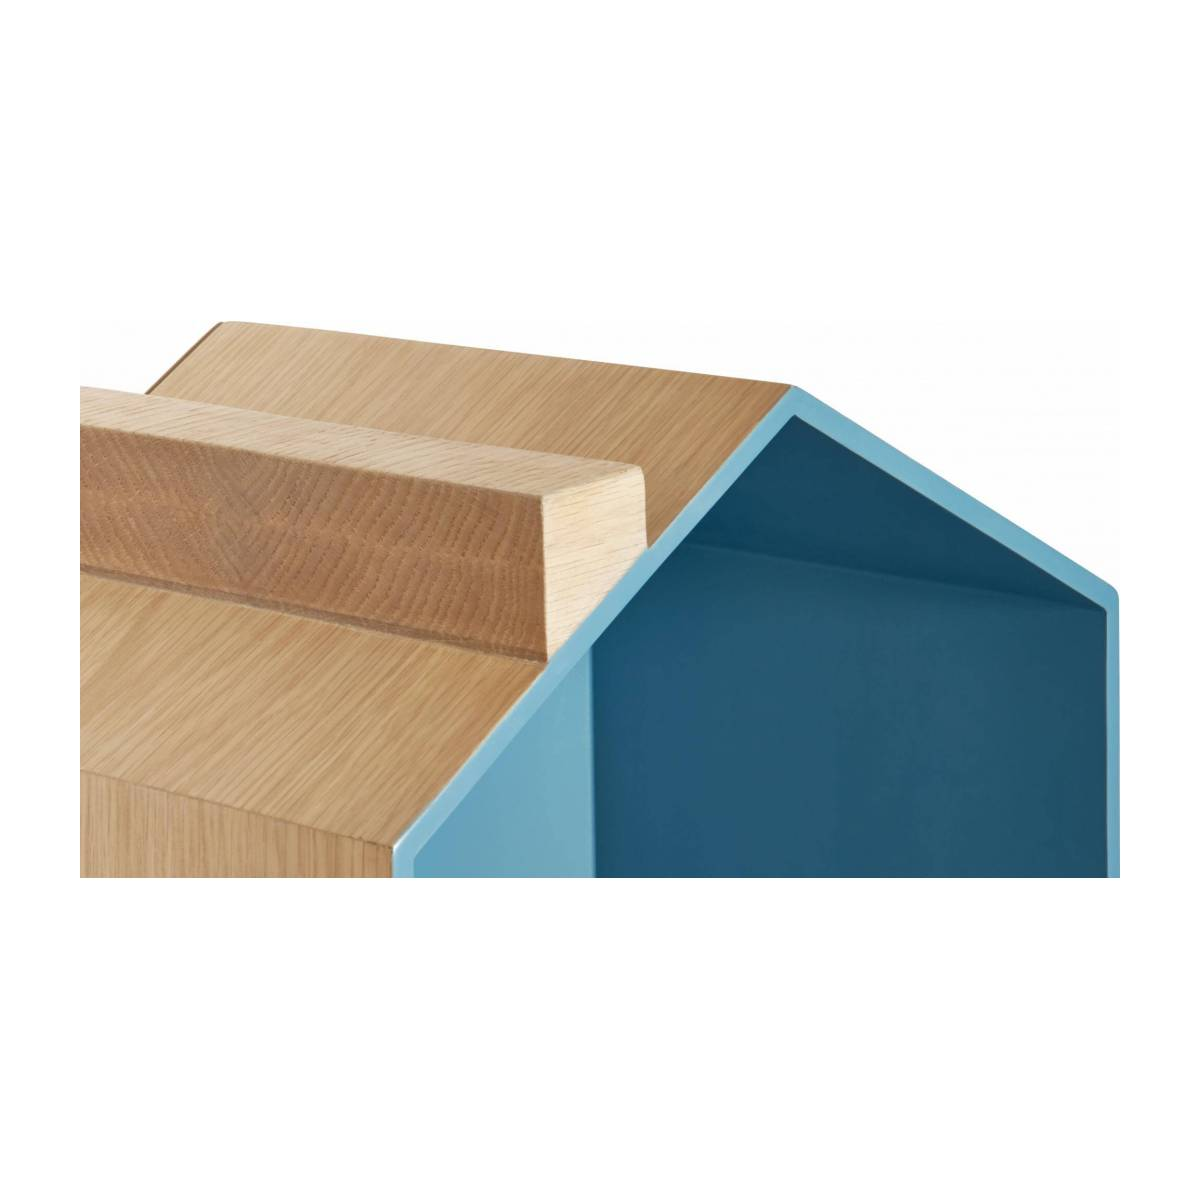 Set of 2 shelves made of oak, natural, grey-blue and yellow n°8